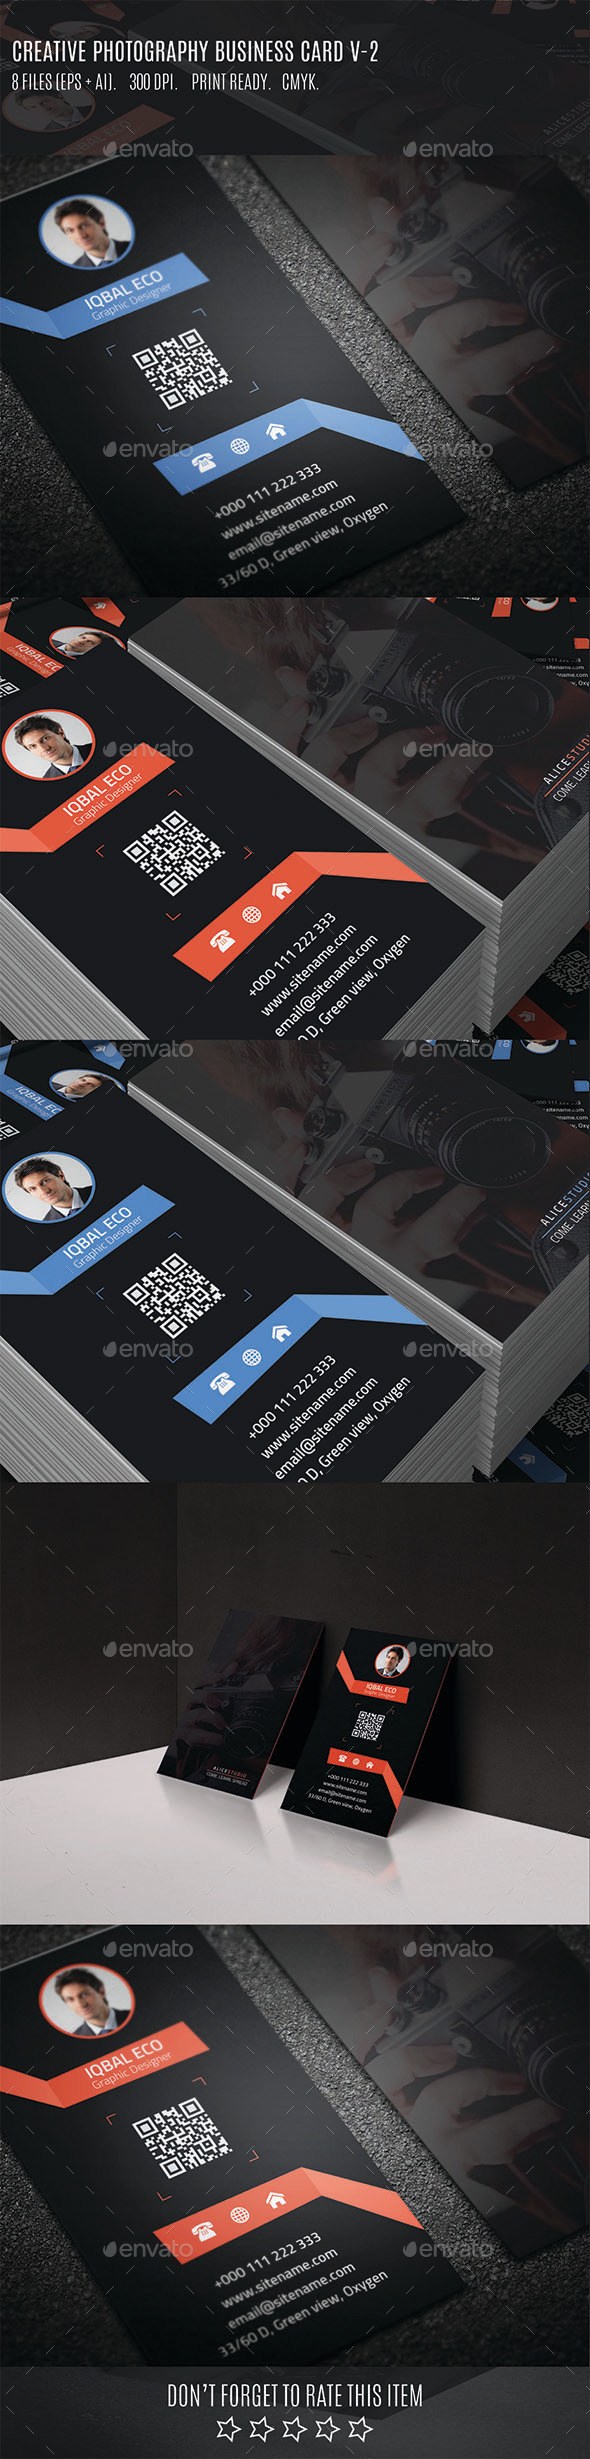 GraphicRiver Creative Photography Business Card V-2 10665684